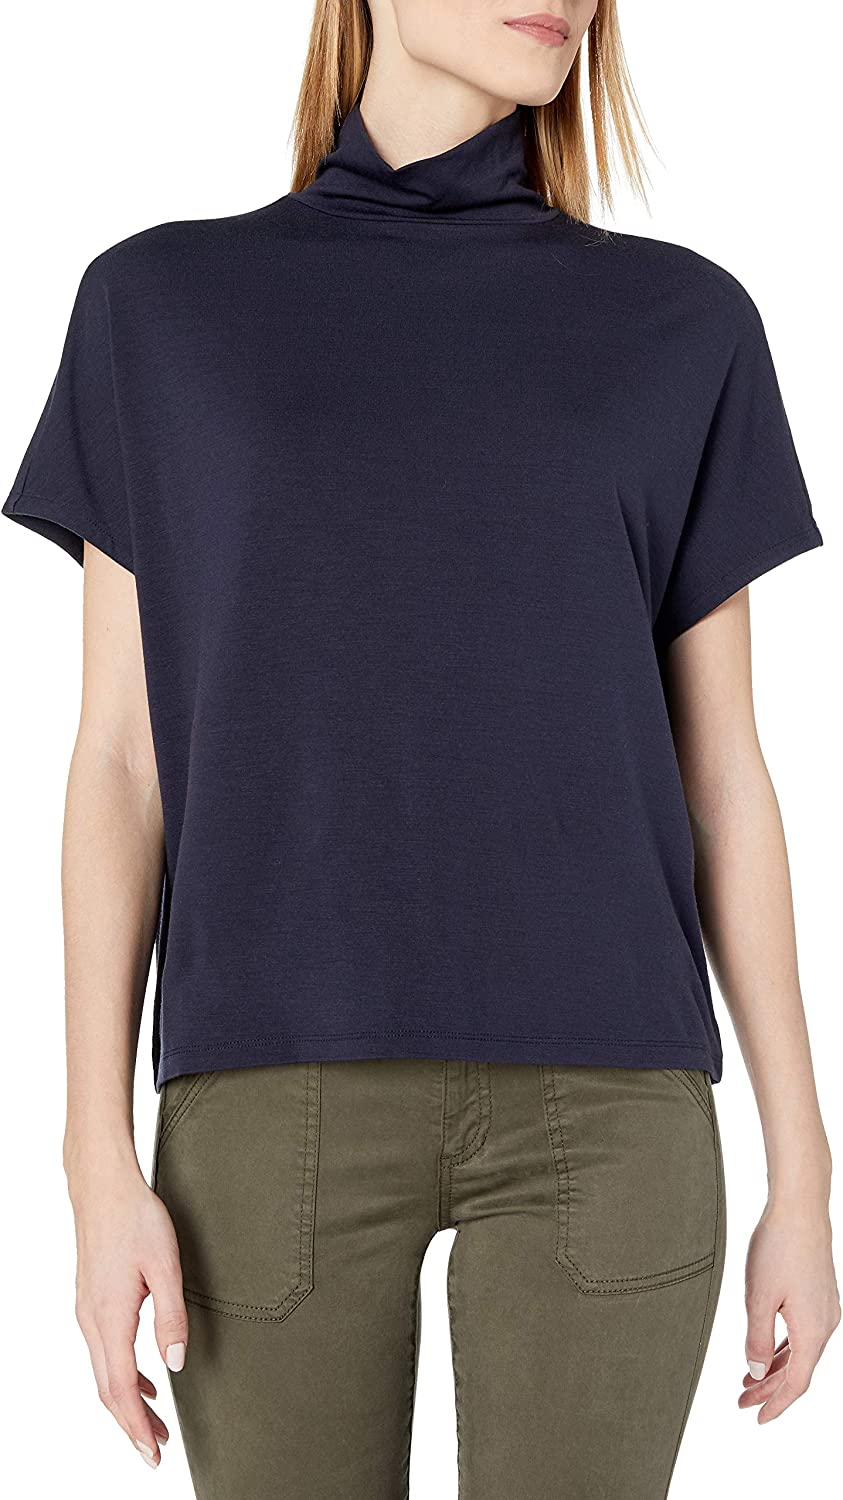 Amazon Brand - Daily Ritual Women's Soft Rayon Jersey Slouchy Pullover Top